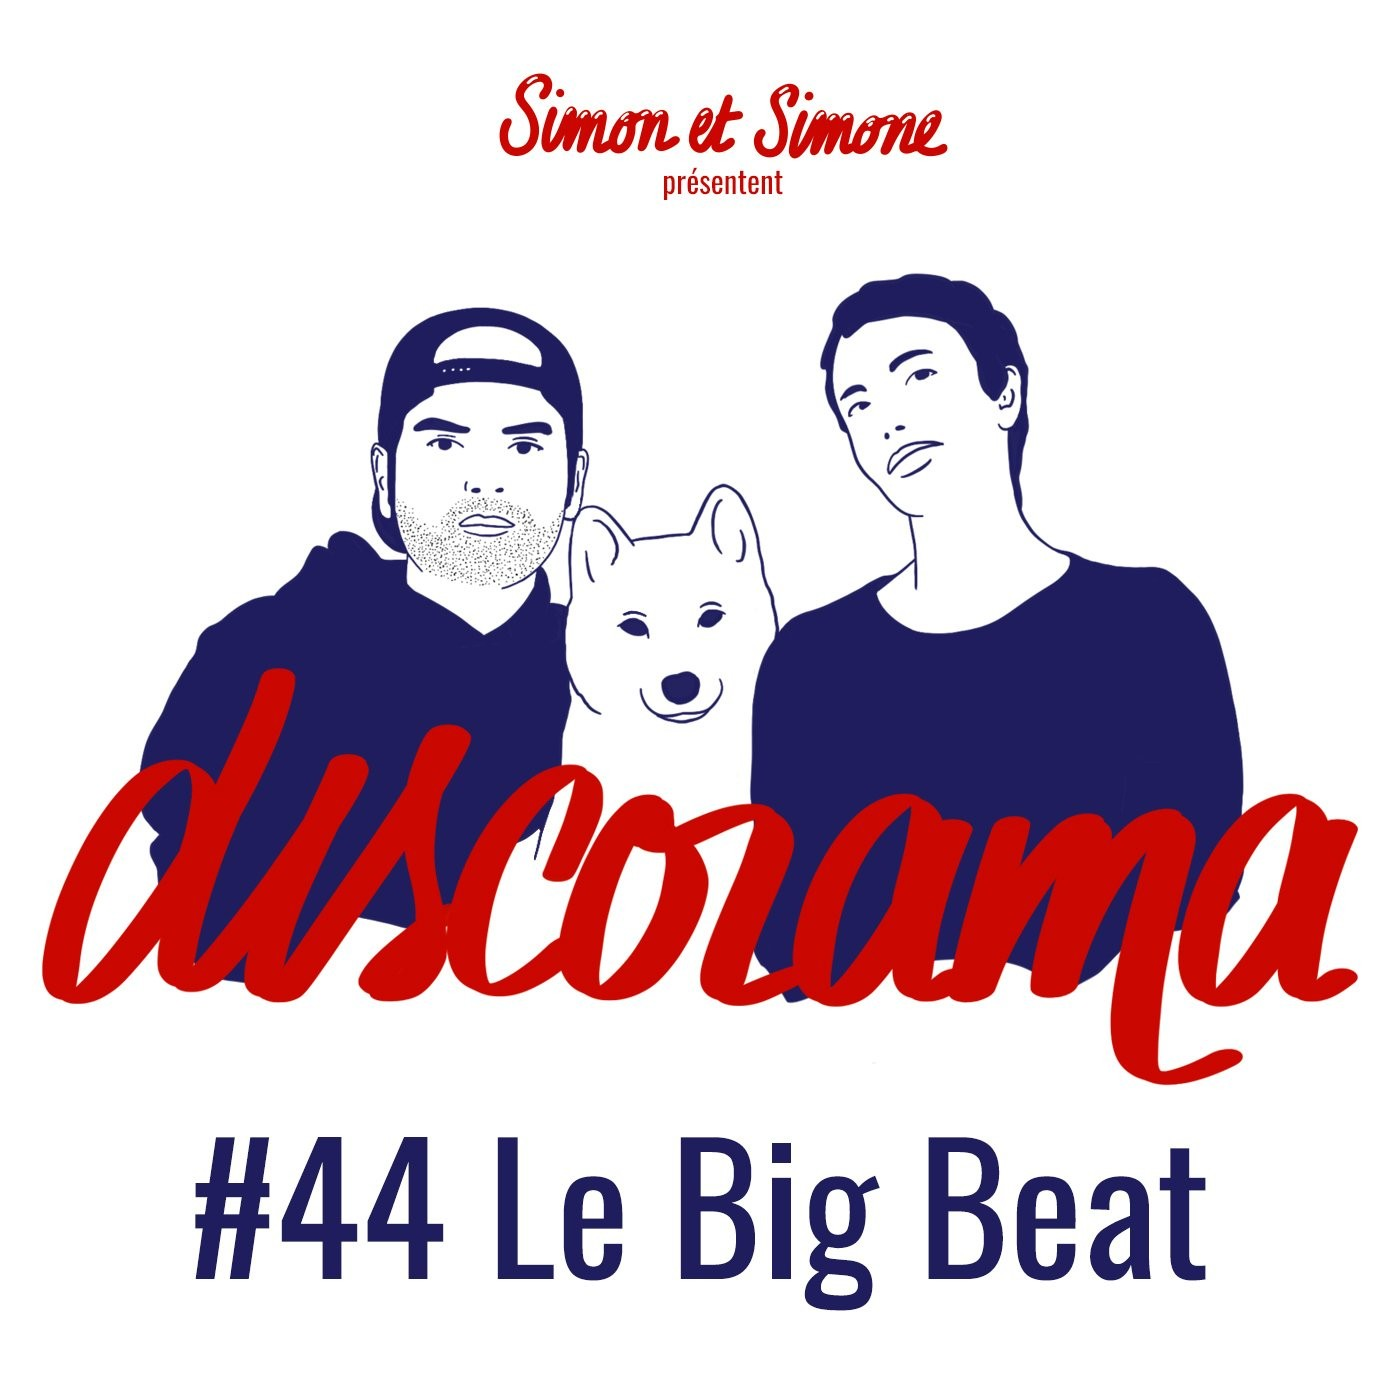 Discorama #44 - Le Big Beat